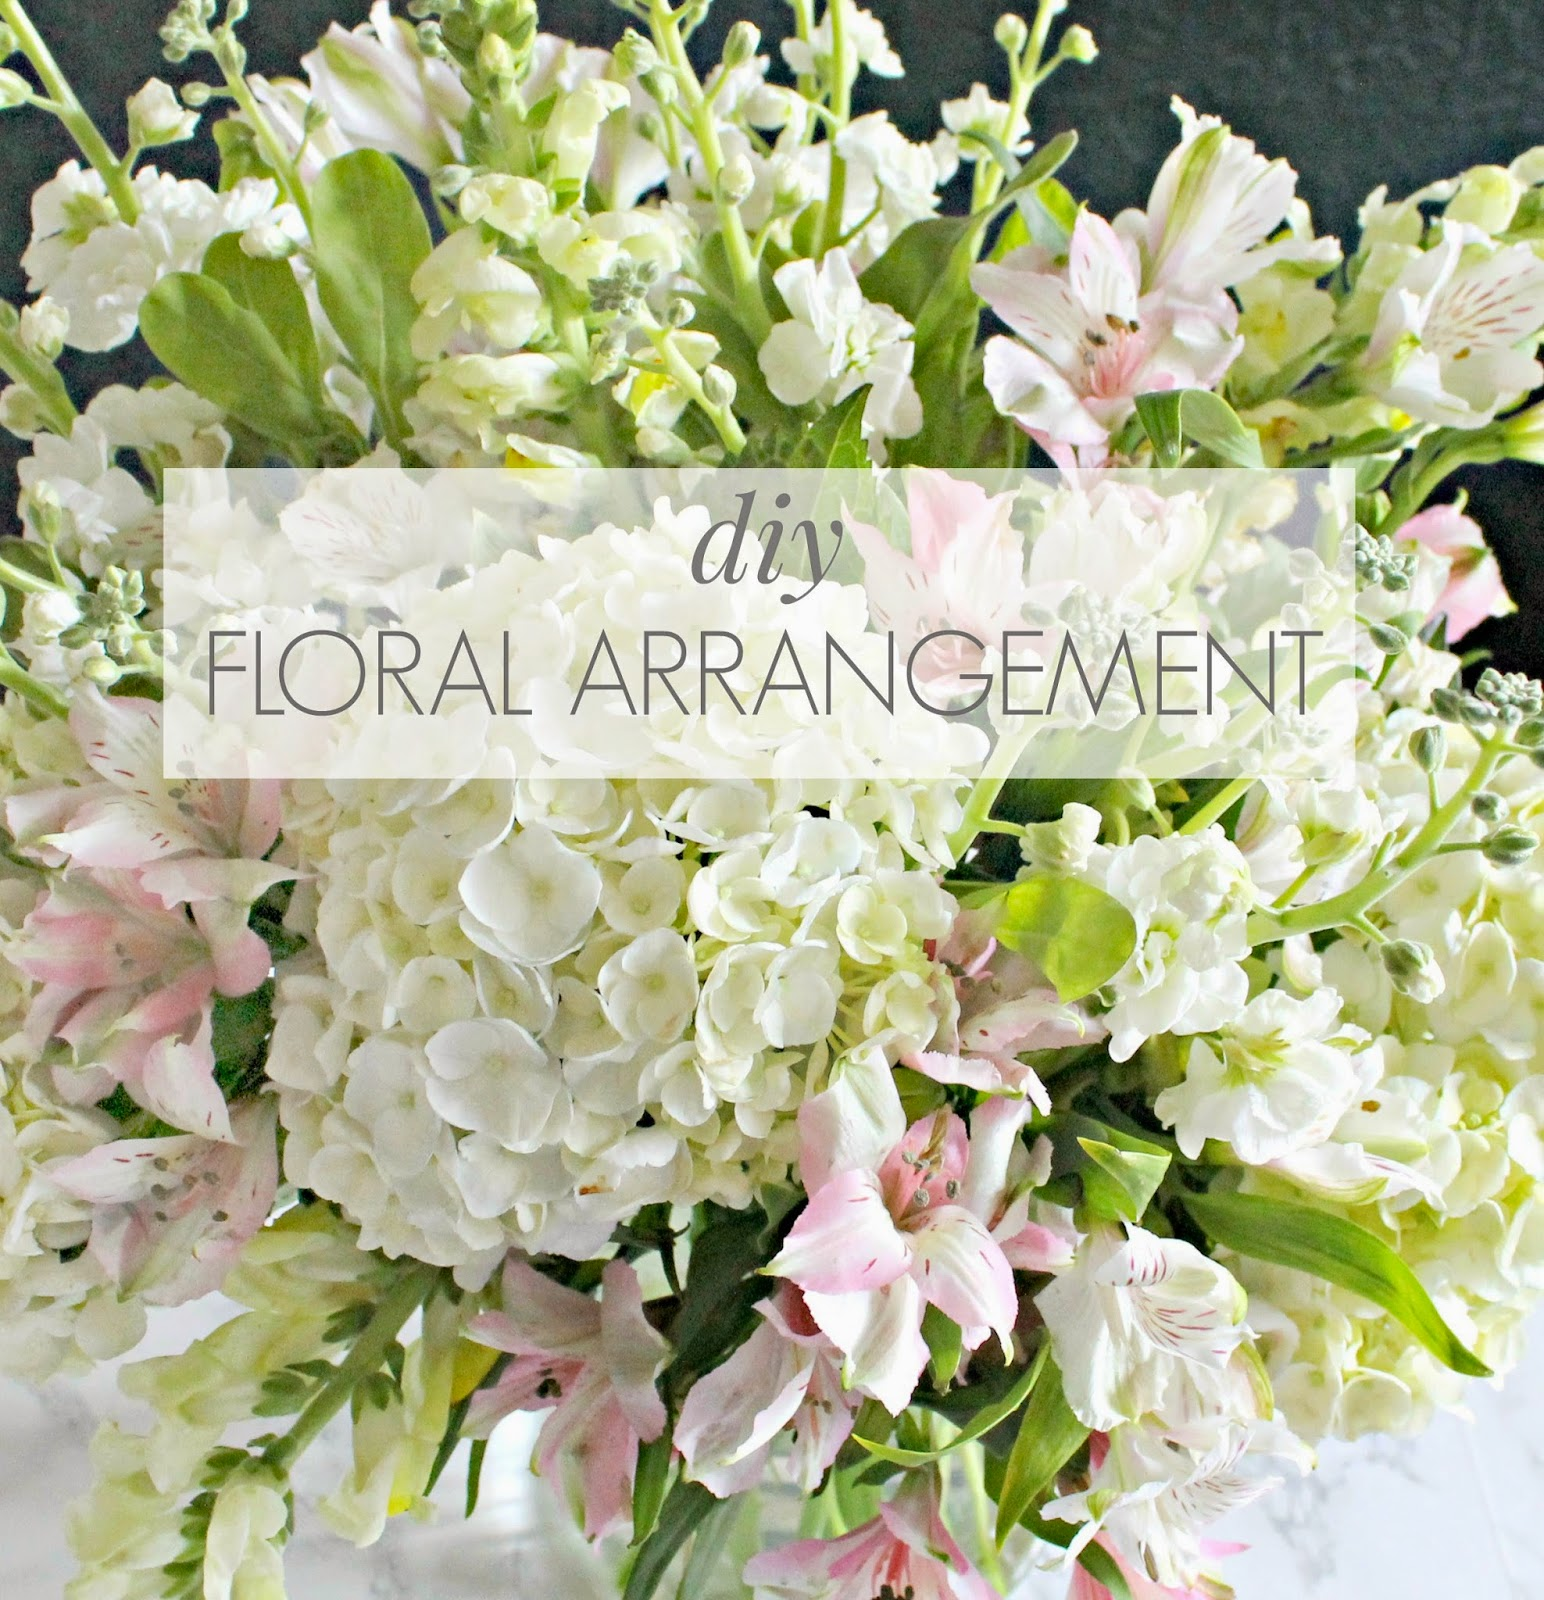 Flower Arranging Made Easy